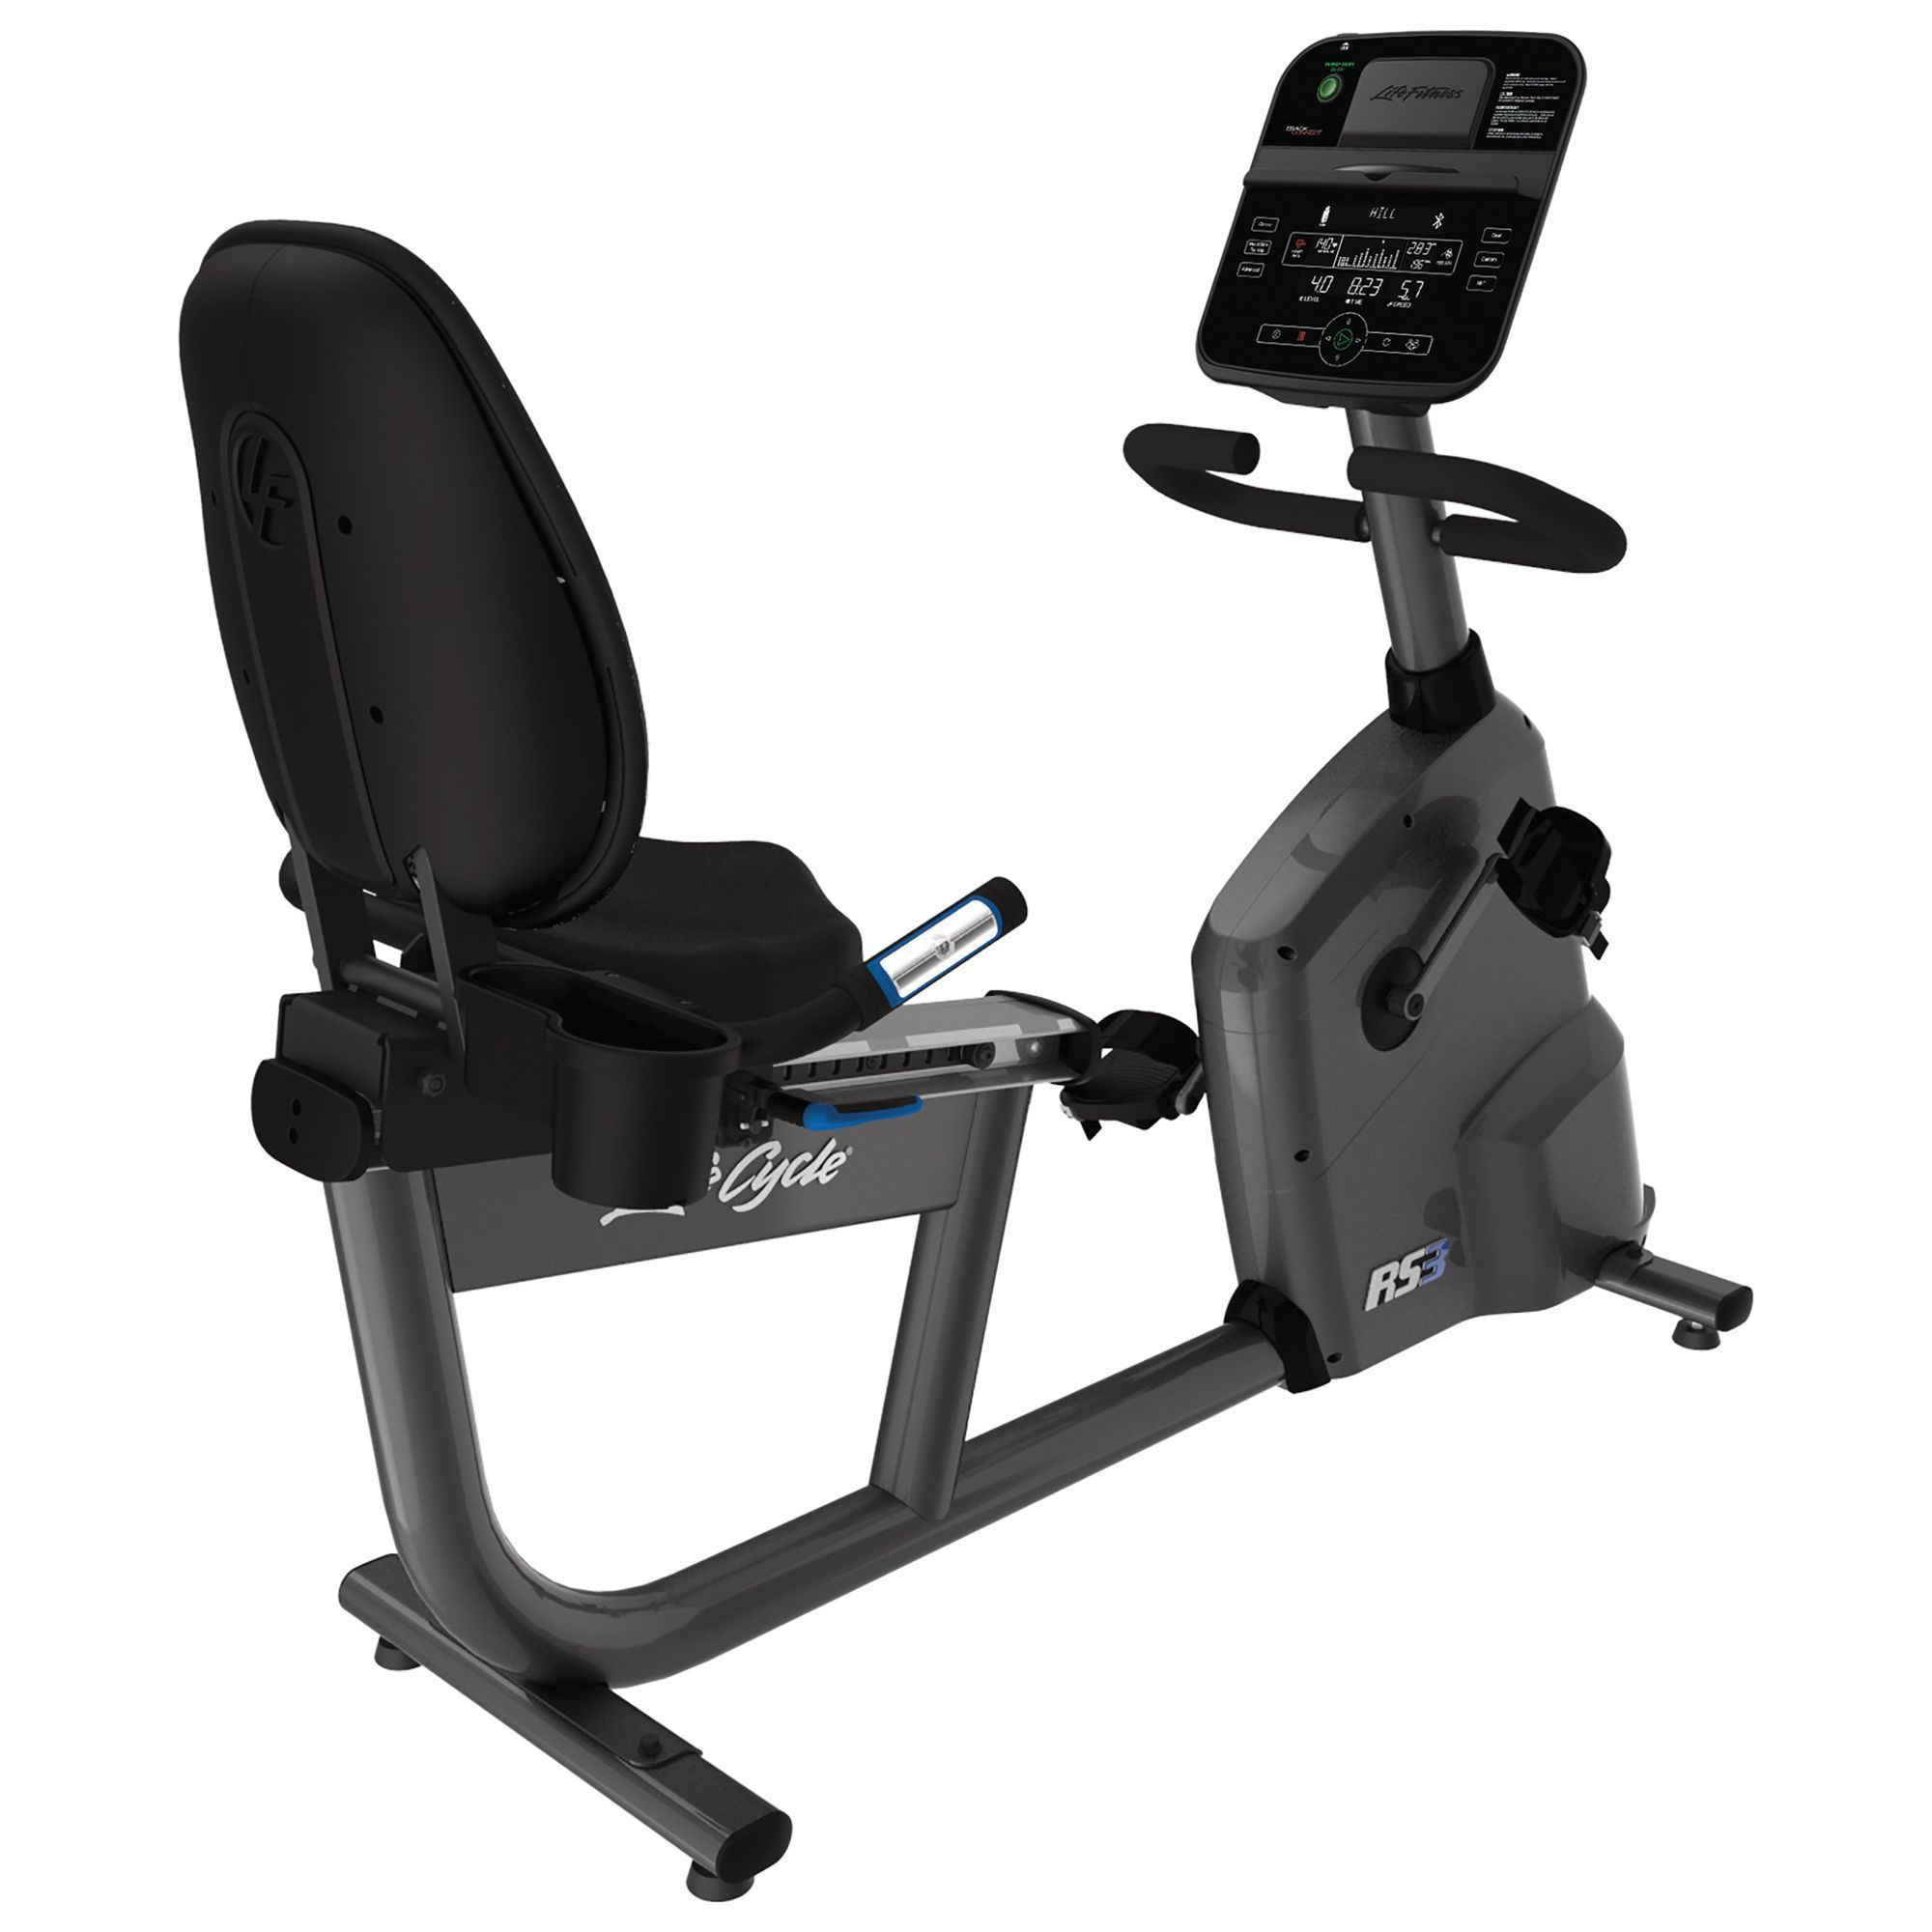 #Bike #Connect #Console #Exercise #fitnes #fitness #fitnessprogramm zu hause ohne geräte #Bike #Conn...